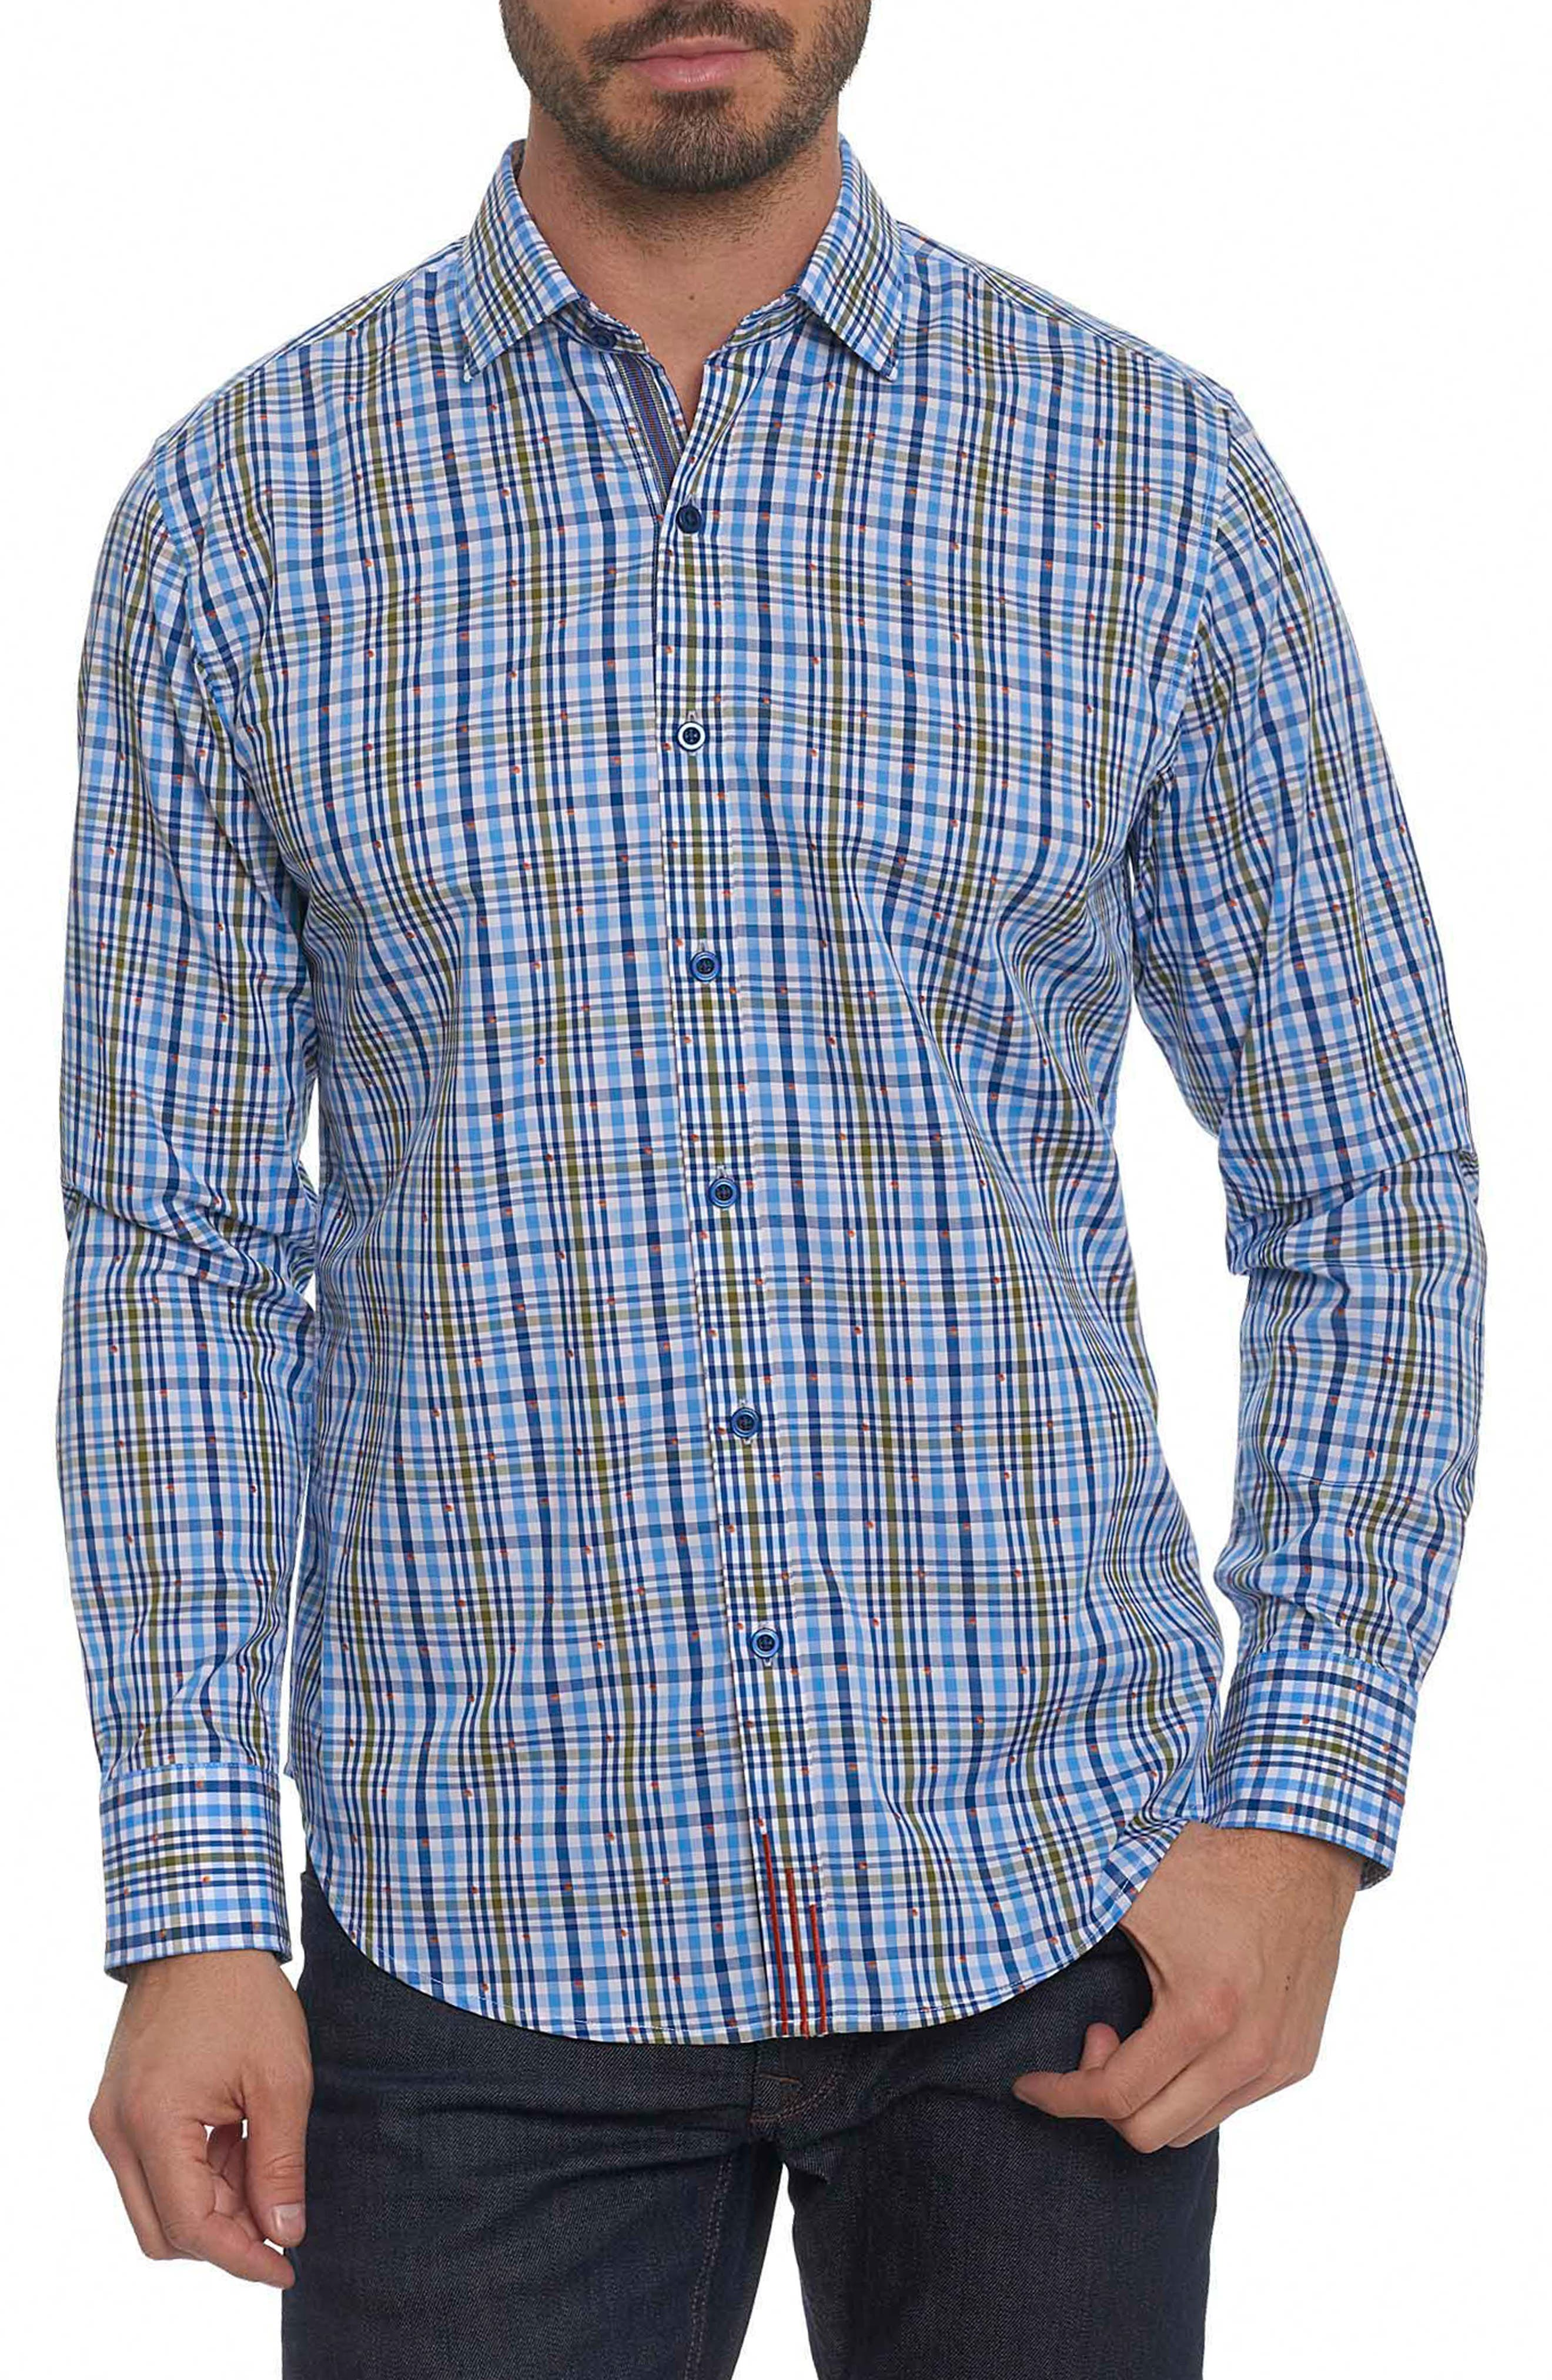 Cape Vincent Classic Fit Dobby Check Sport Shirt,                         Main,                         color, Blue